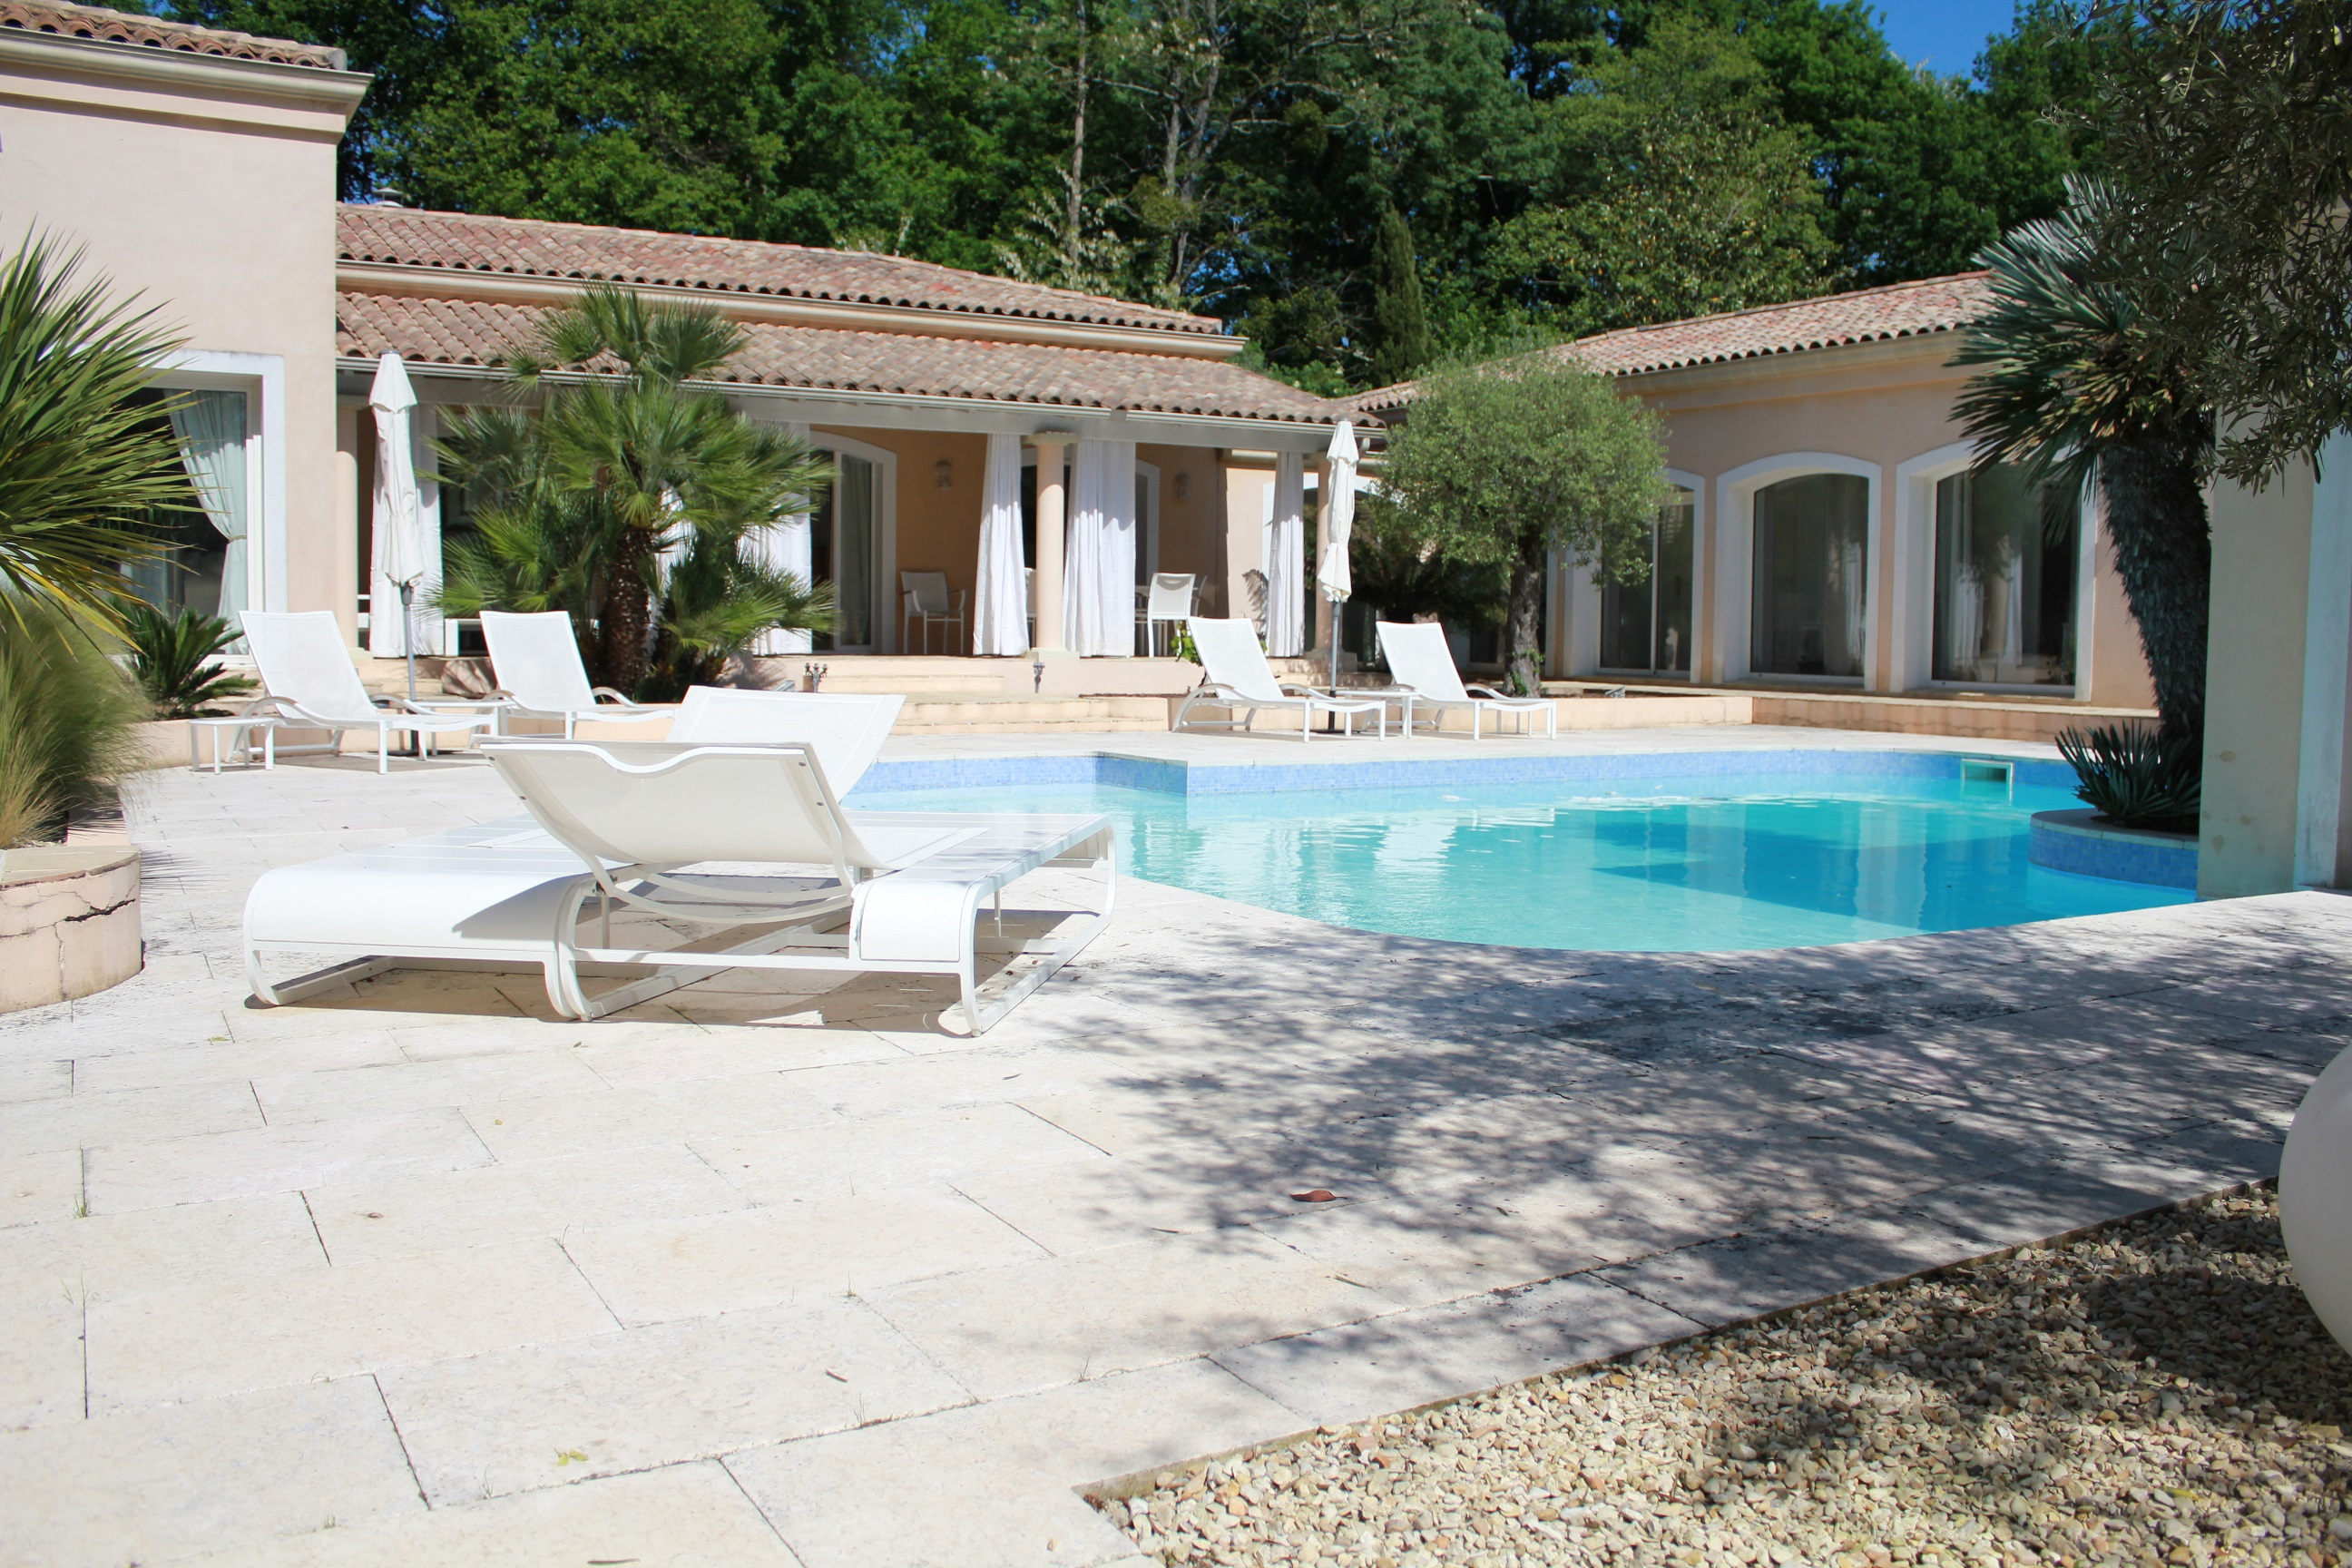 Single Family Home for Sale at Exceptional contemporary house in beautiful setting Other Aquitaine, Aquitaine France